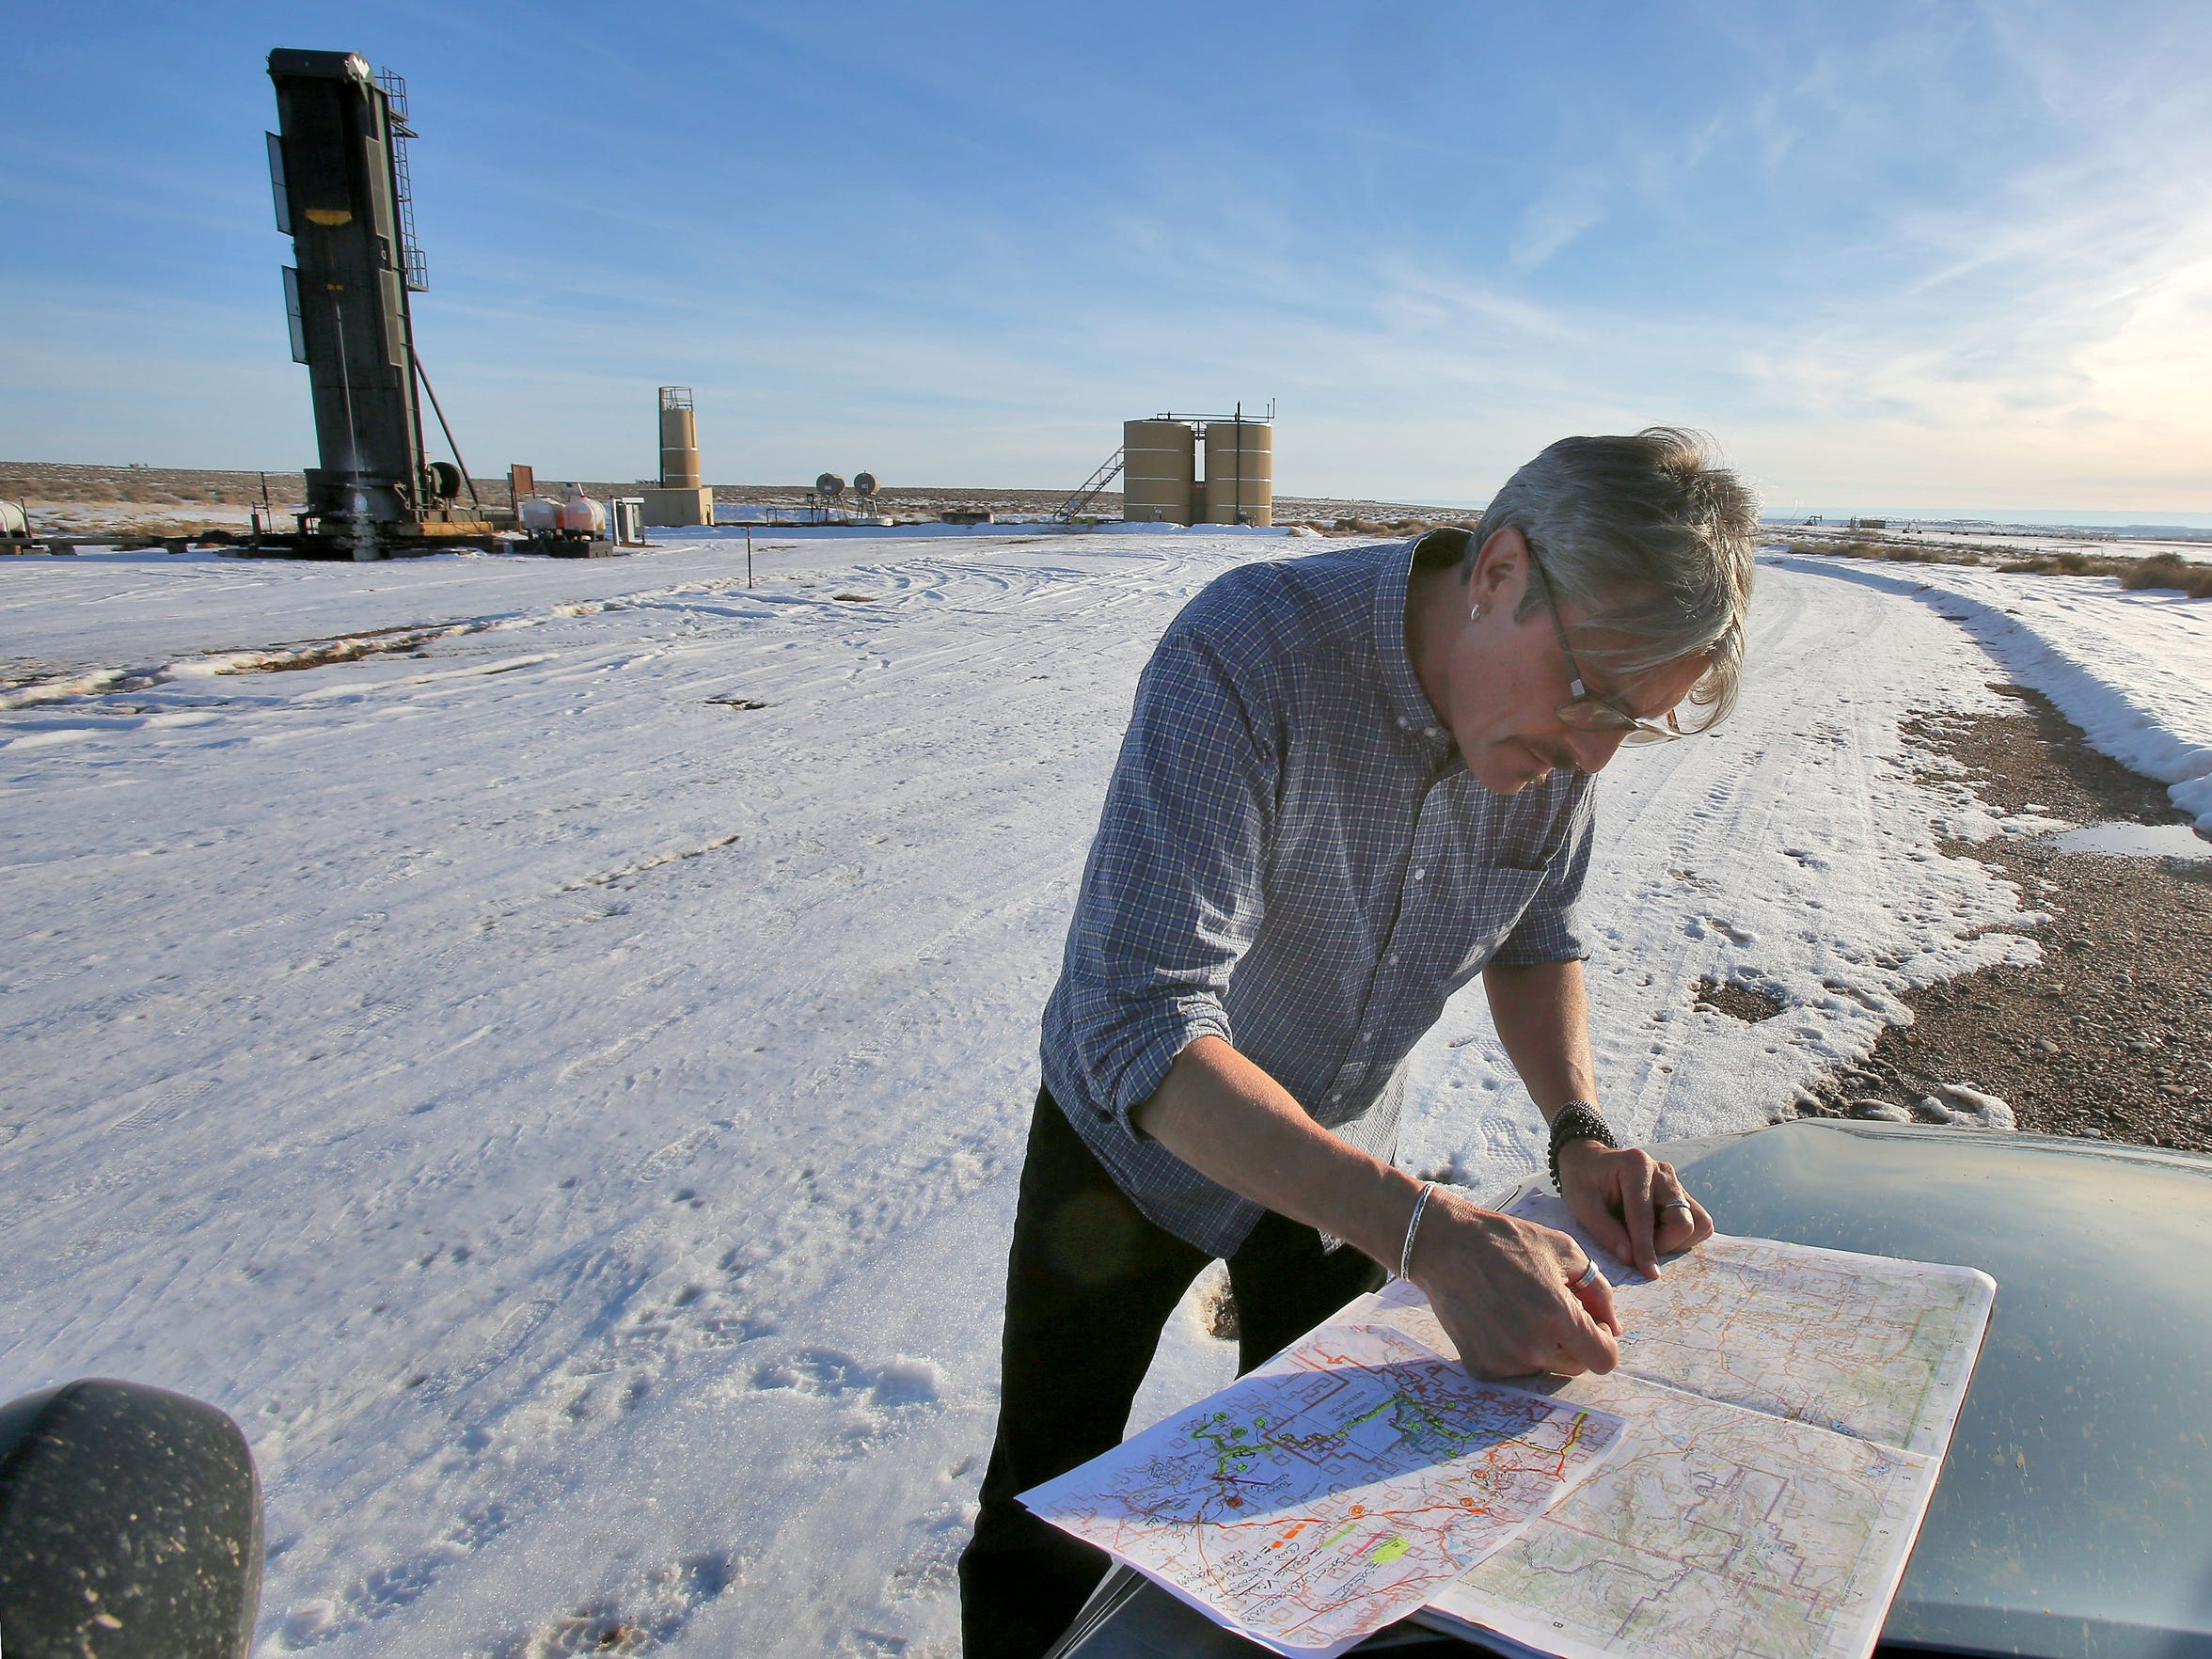 Tim Ream of WildEarth Guardians explores oil and gas country near Vernal, Utah.